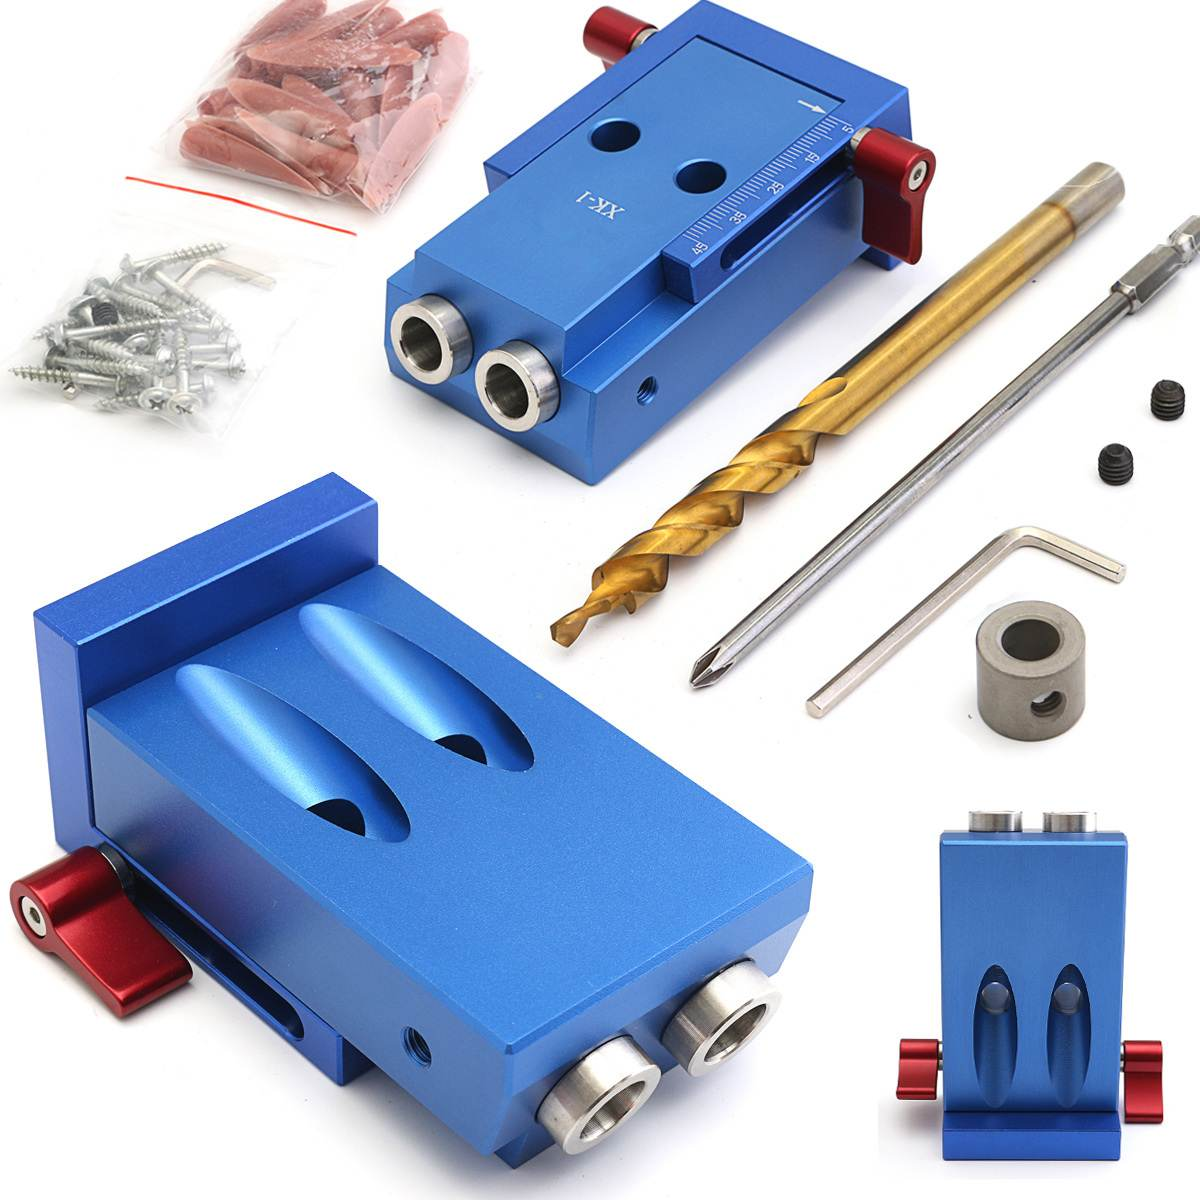 Mini Style Pocket Slant Hole Jig Kit + Step Drilling Bit Wood Work Tool Set